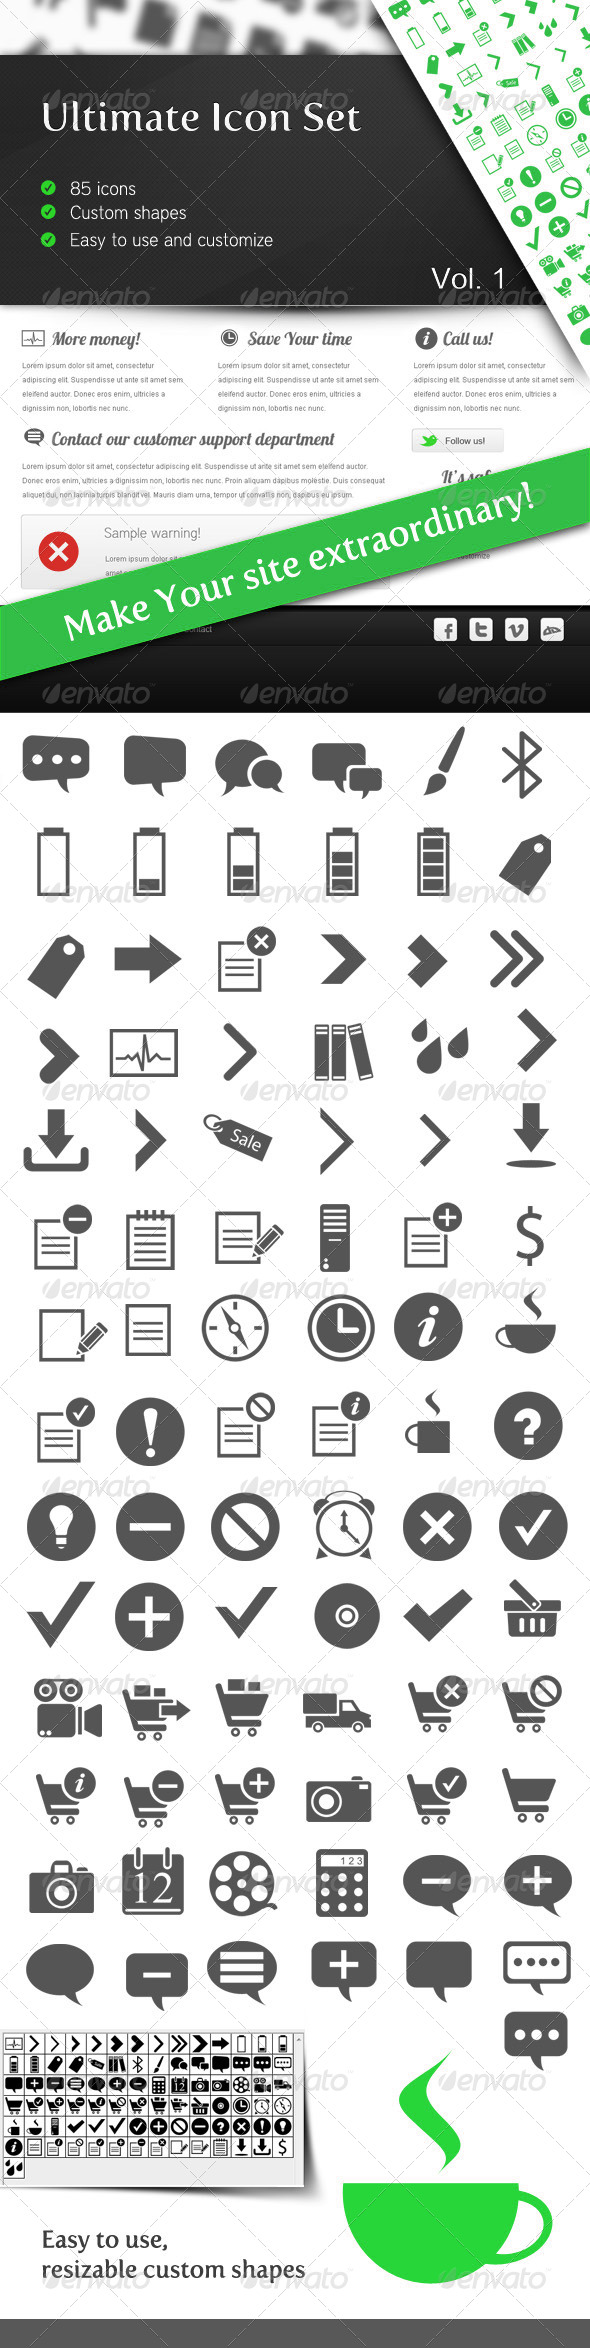 Ultimate Icon Set Vol 1 - Symbols Shapes